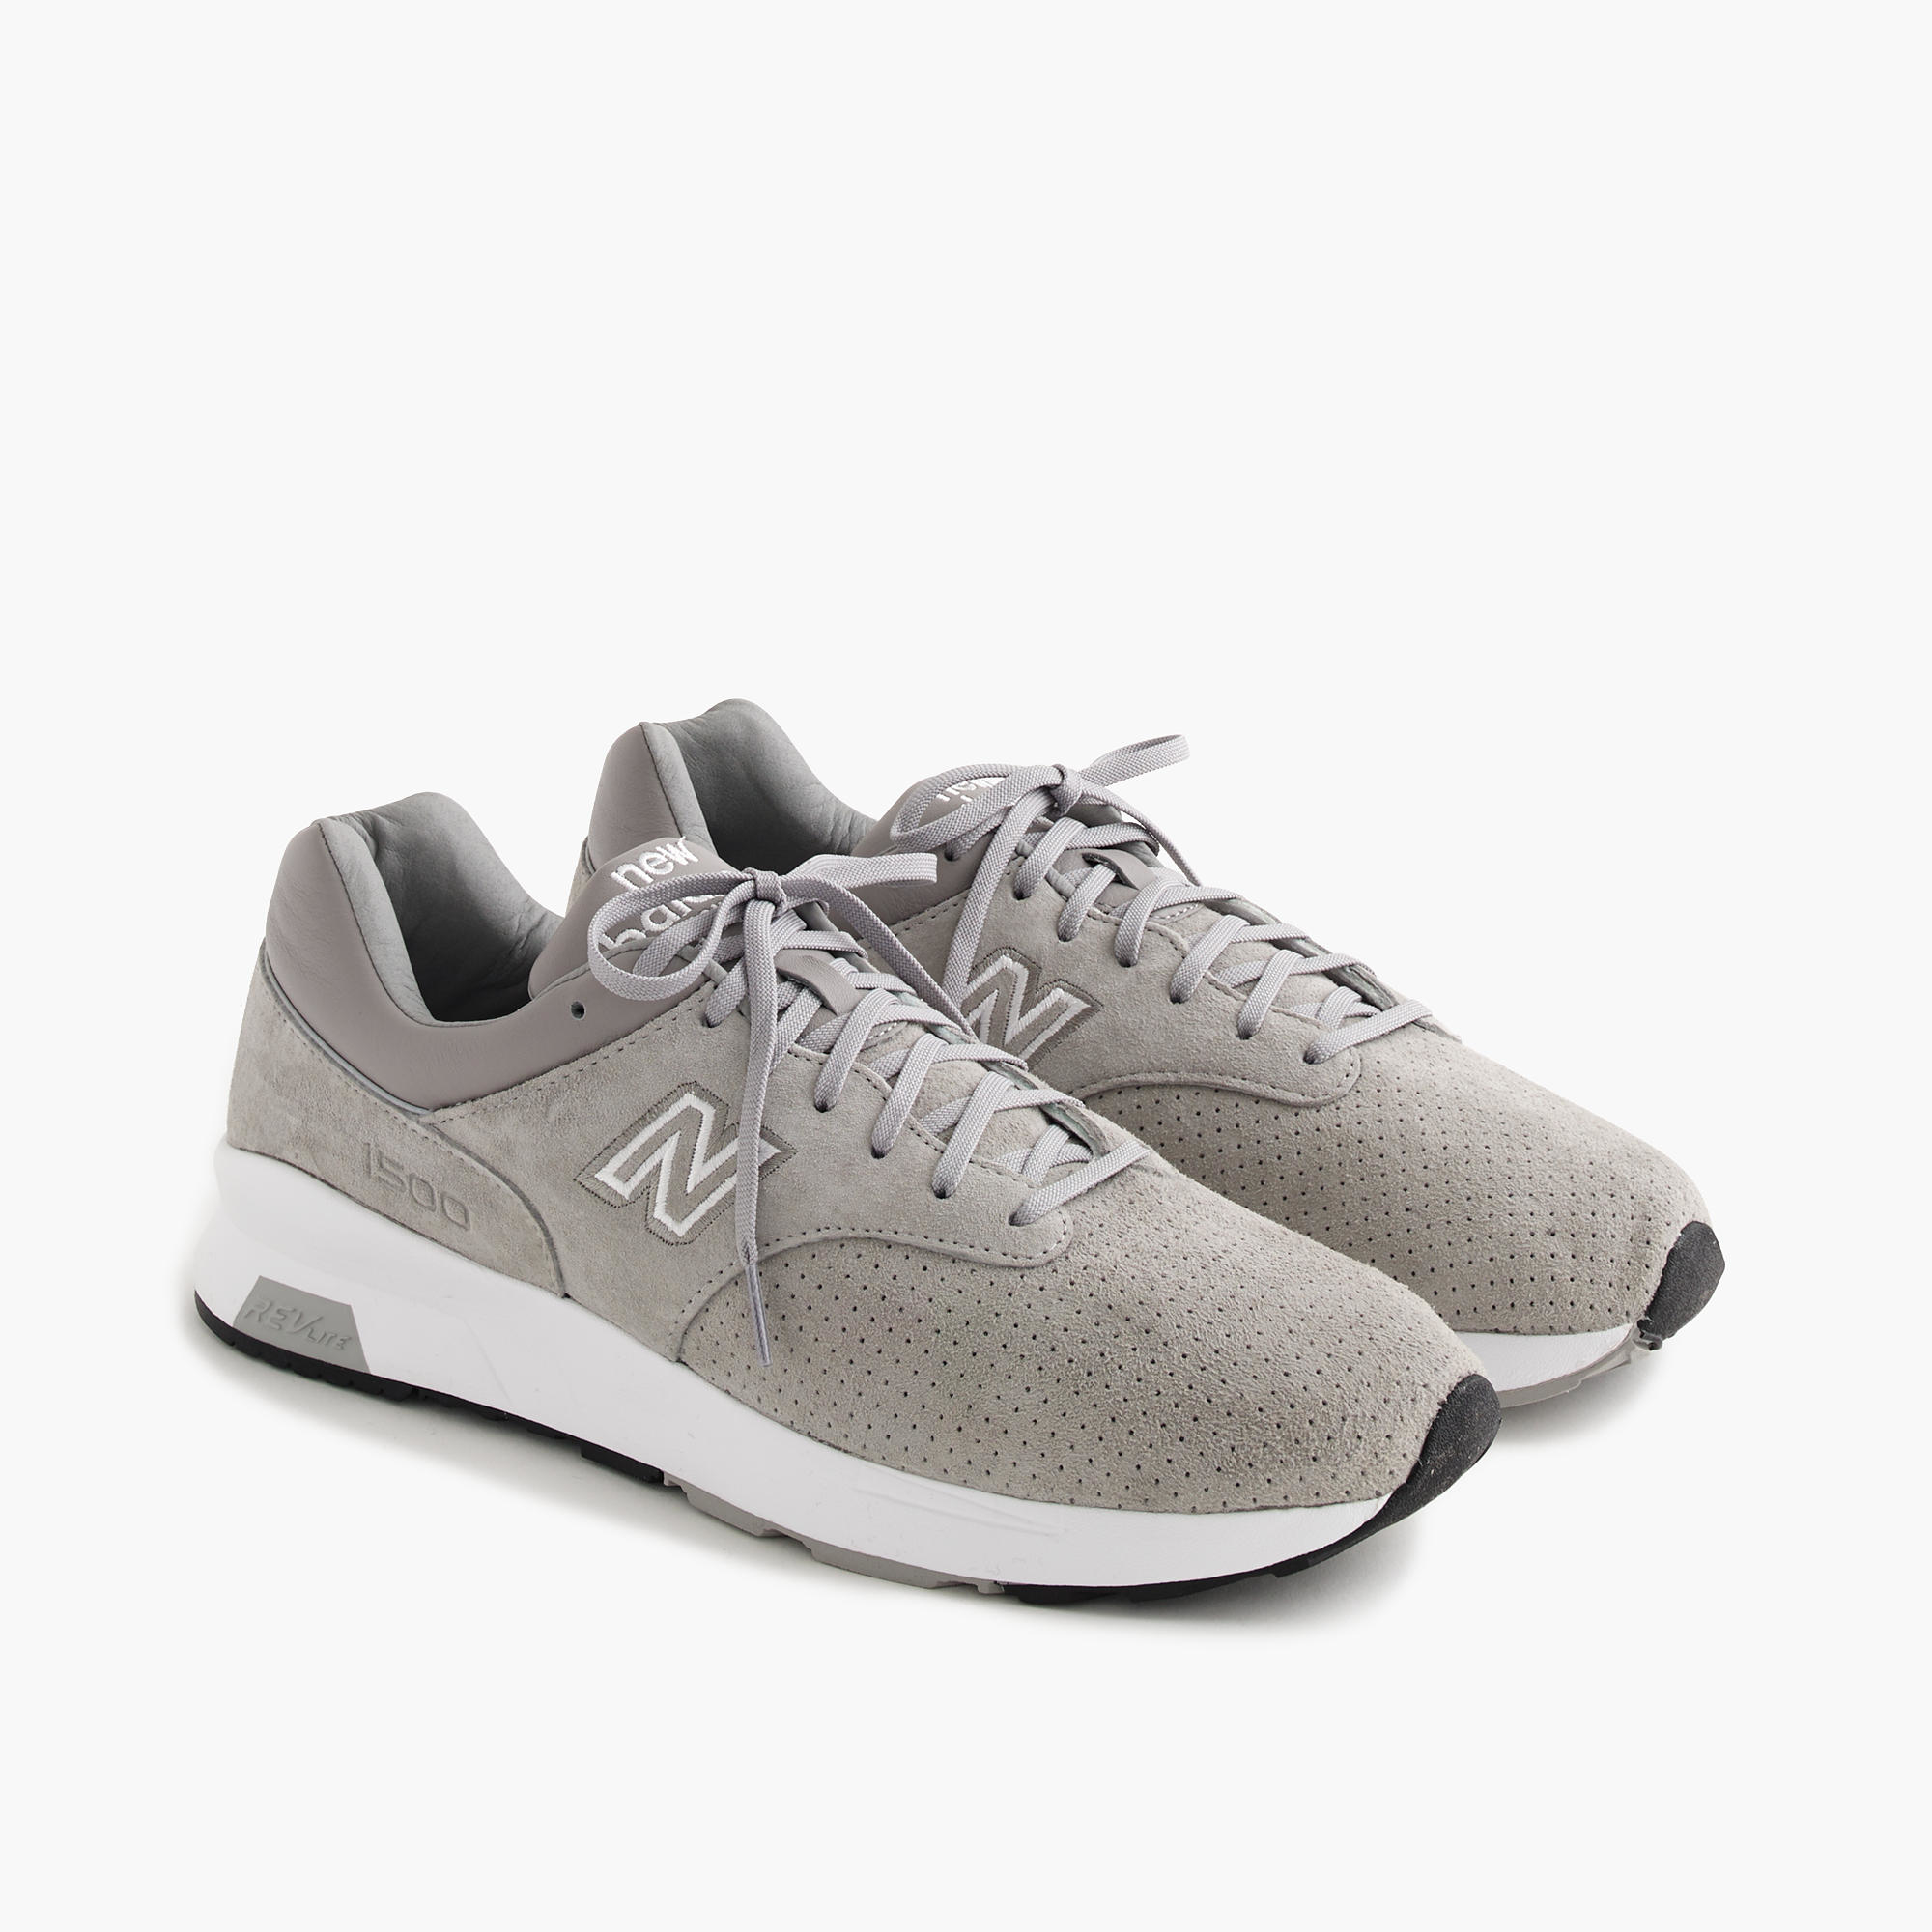 Lyst - J.Crew New Balance 1500 Re-engineered Sneakers in Gray for Men 217d43f129e54